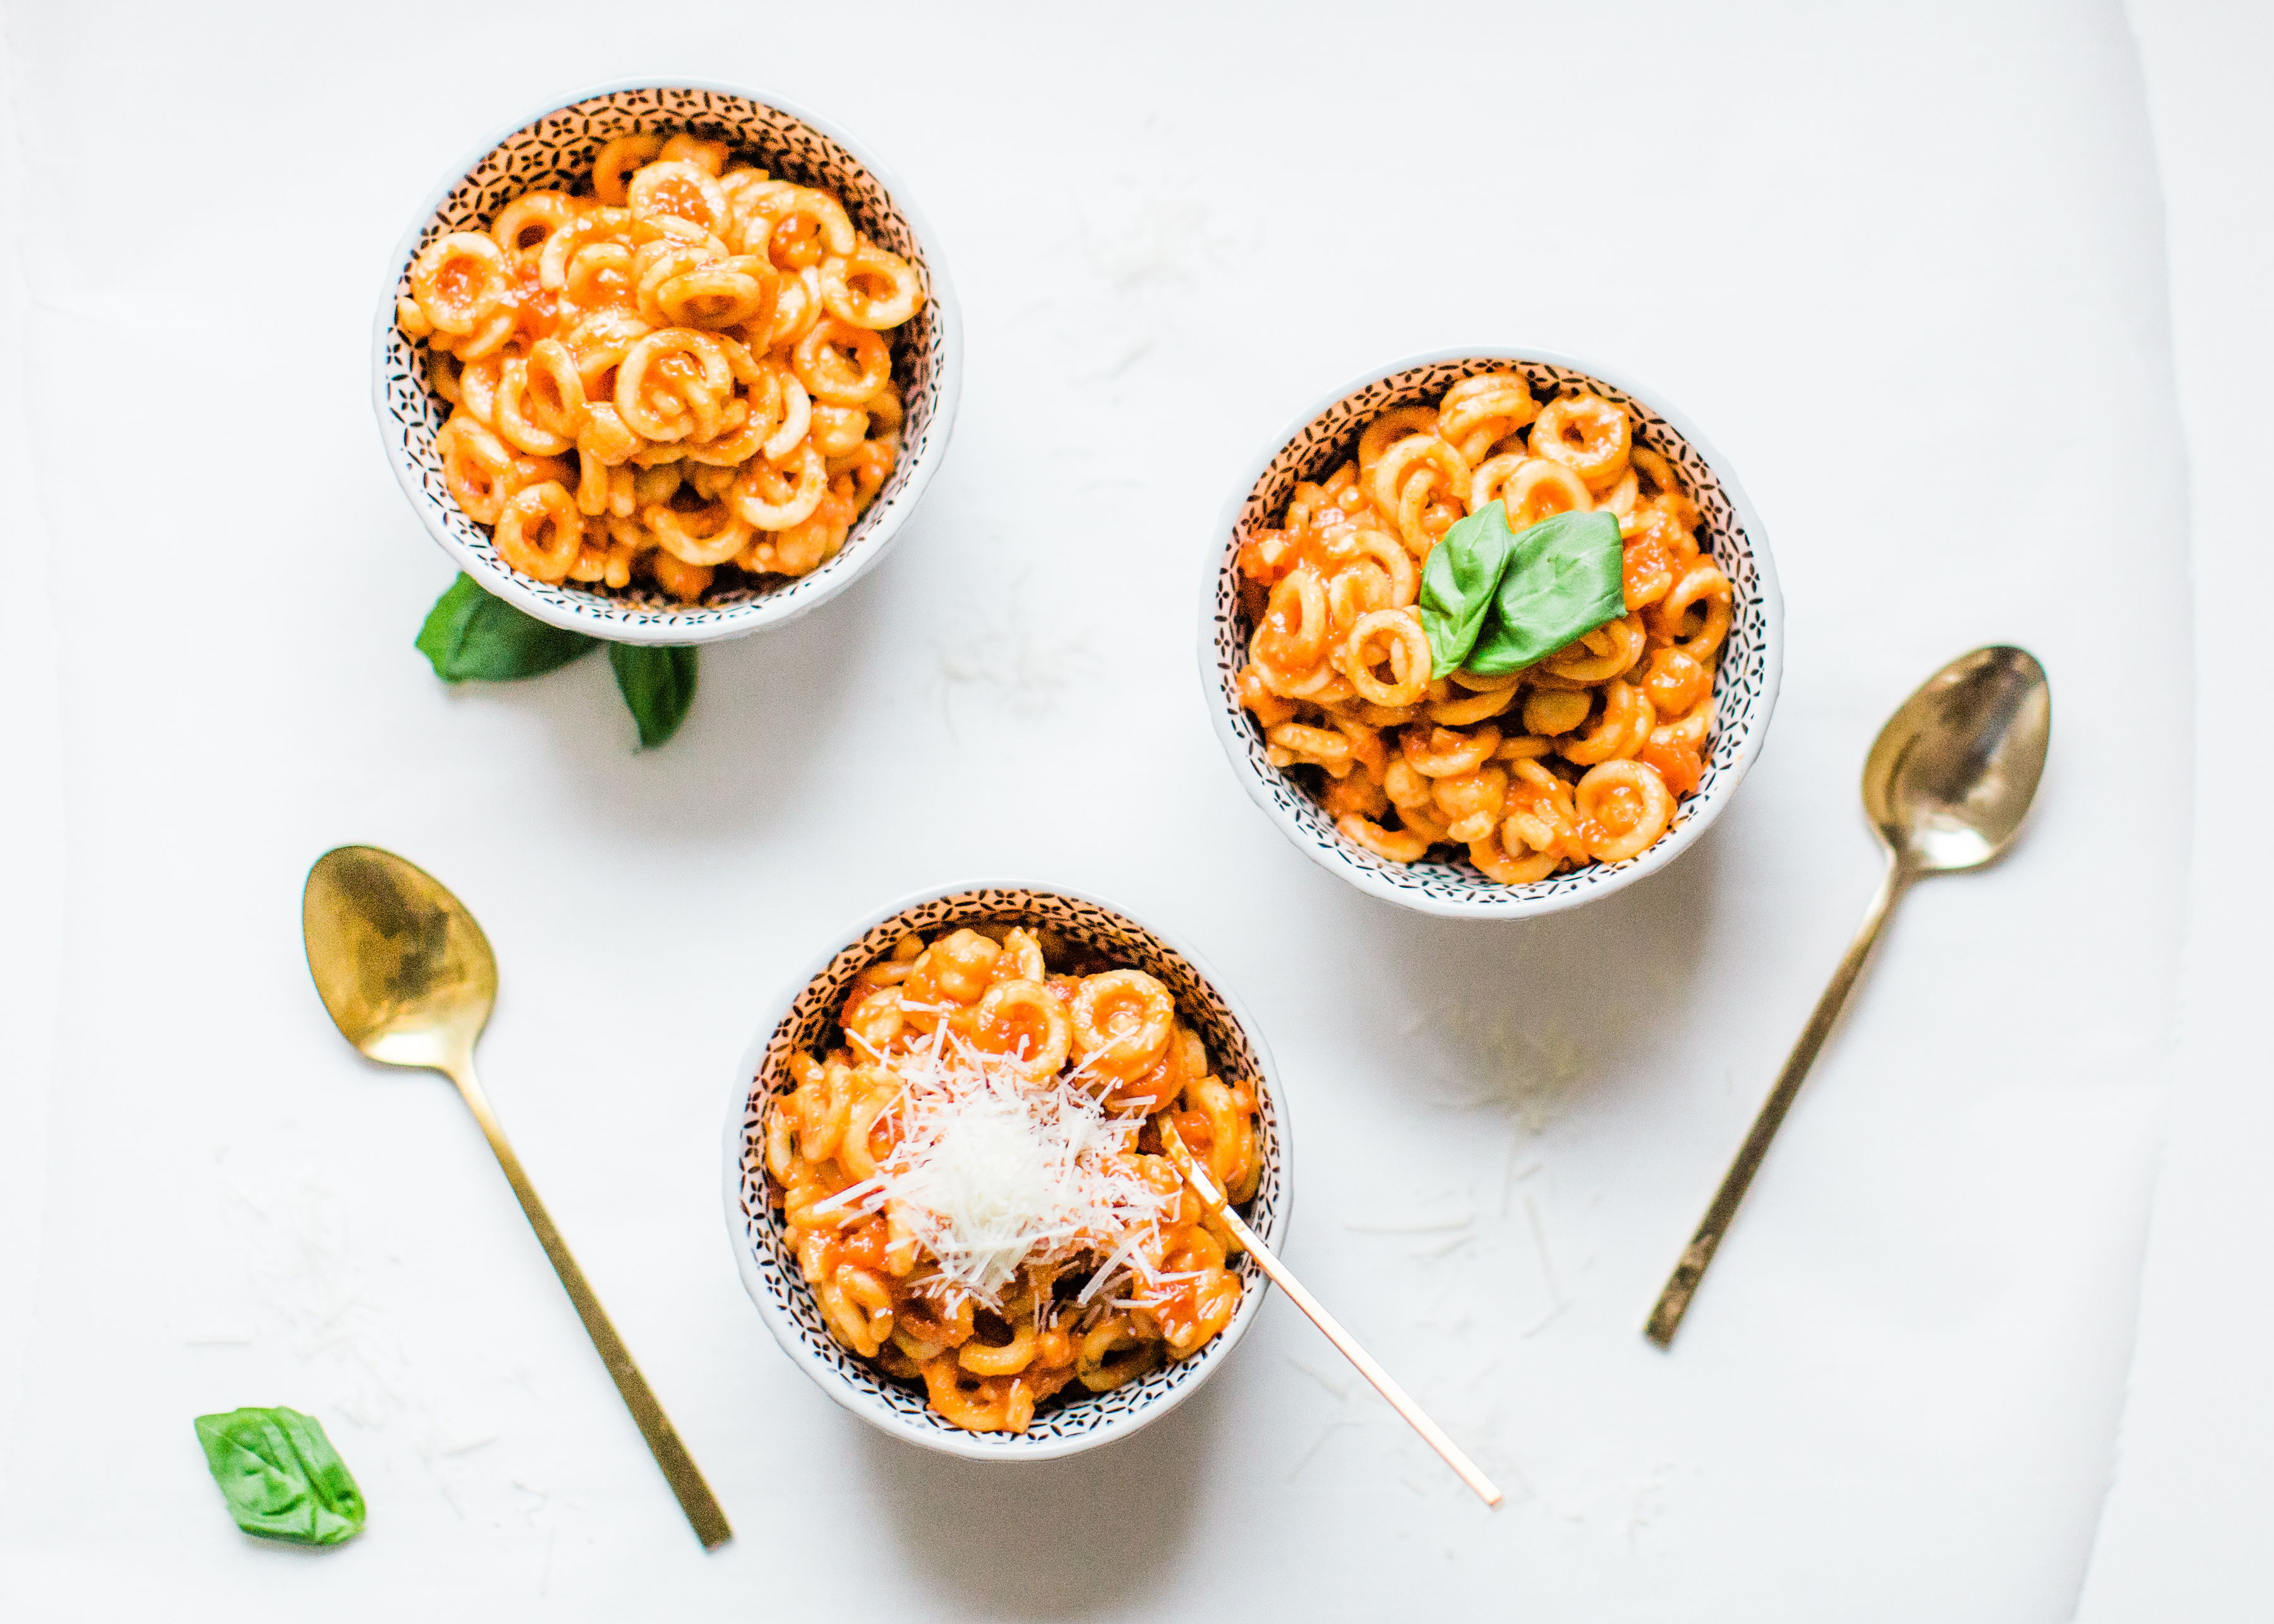 Looking for a delicious one-pot 30-minute vegetarian dinner your whole family will love? Pasta e Ceci; a.k.a., the classic Roman recipe for hearty pasta and chickpeas are the modern day healthy Spaghettios, and OH MY GOSH, they are good! Click through for the recipe. #grownupspaghettios #spaghettios #healthydinner #vegetarianmeal #vegetariandinner #pastaececi #pastaandchickpeas #onepotmeal #onepotdinner | glitterinc.com | @glitterinc